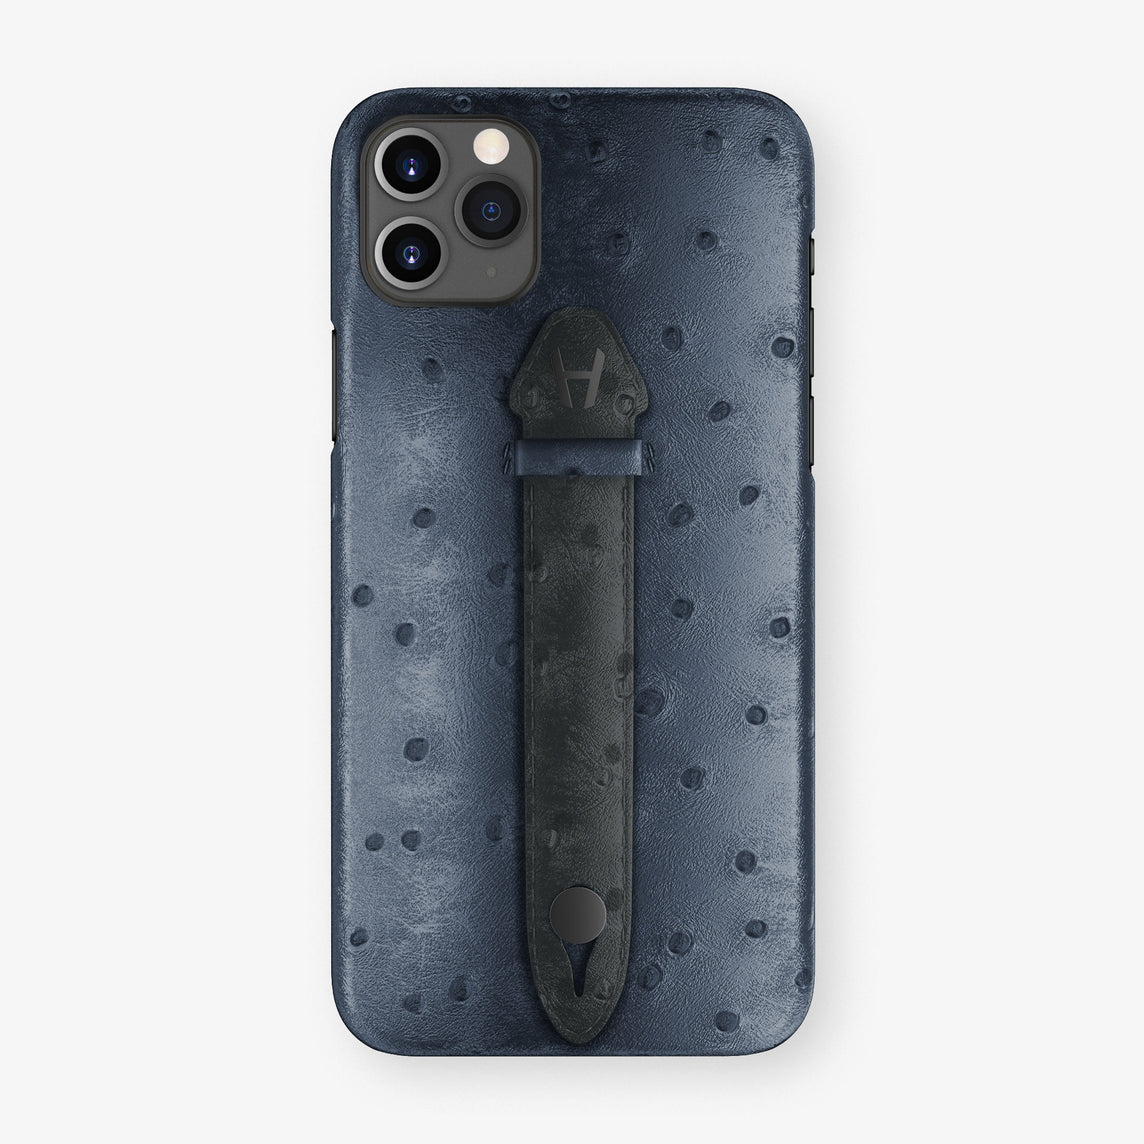 Ostrich Centered Finger Case iPhone 11 Pro Max | Navy Blue/Anthracite - Black